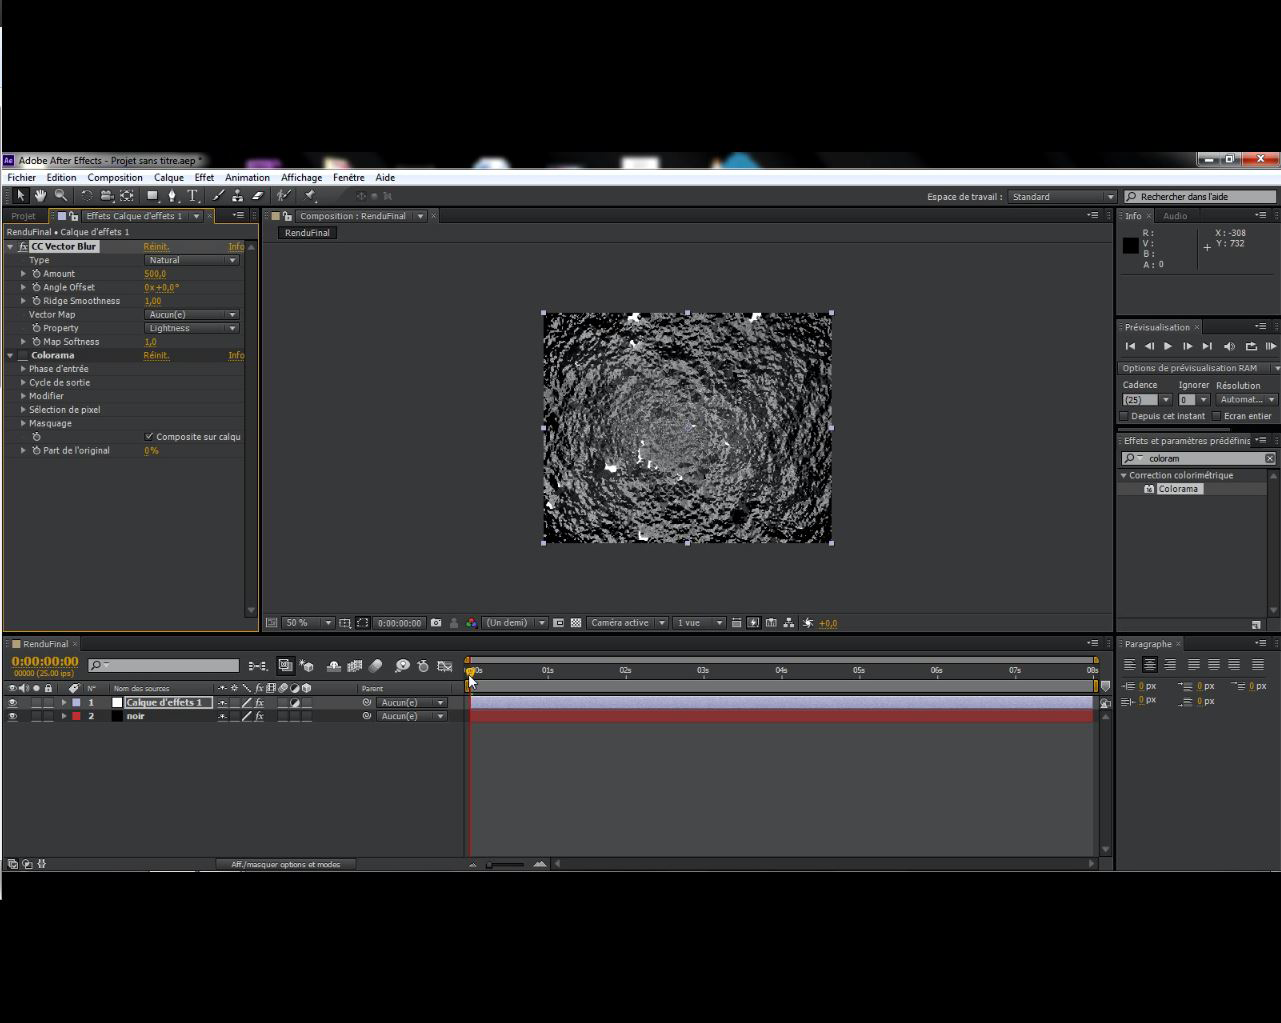 Tutoriel : Animation de texte sur l'eau avec After Effects